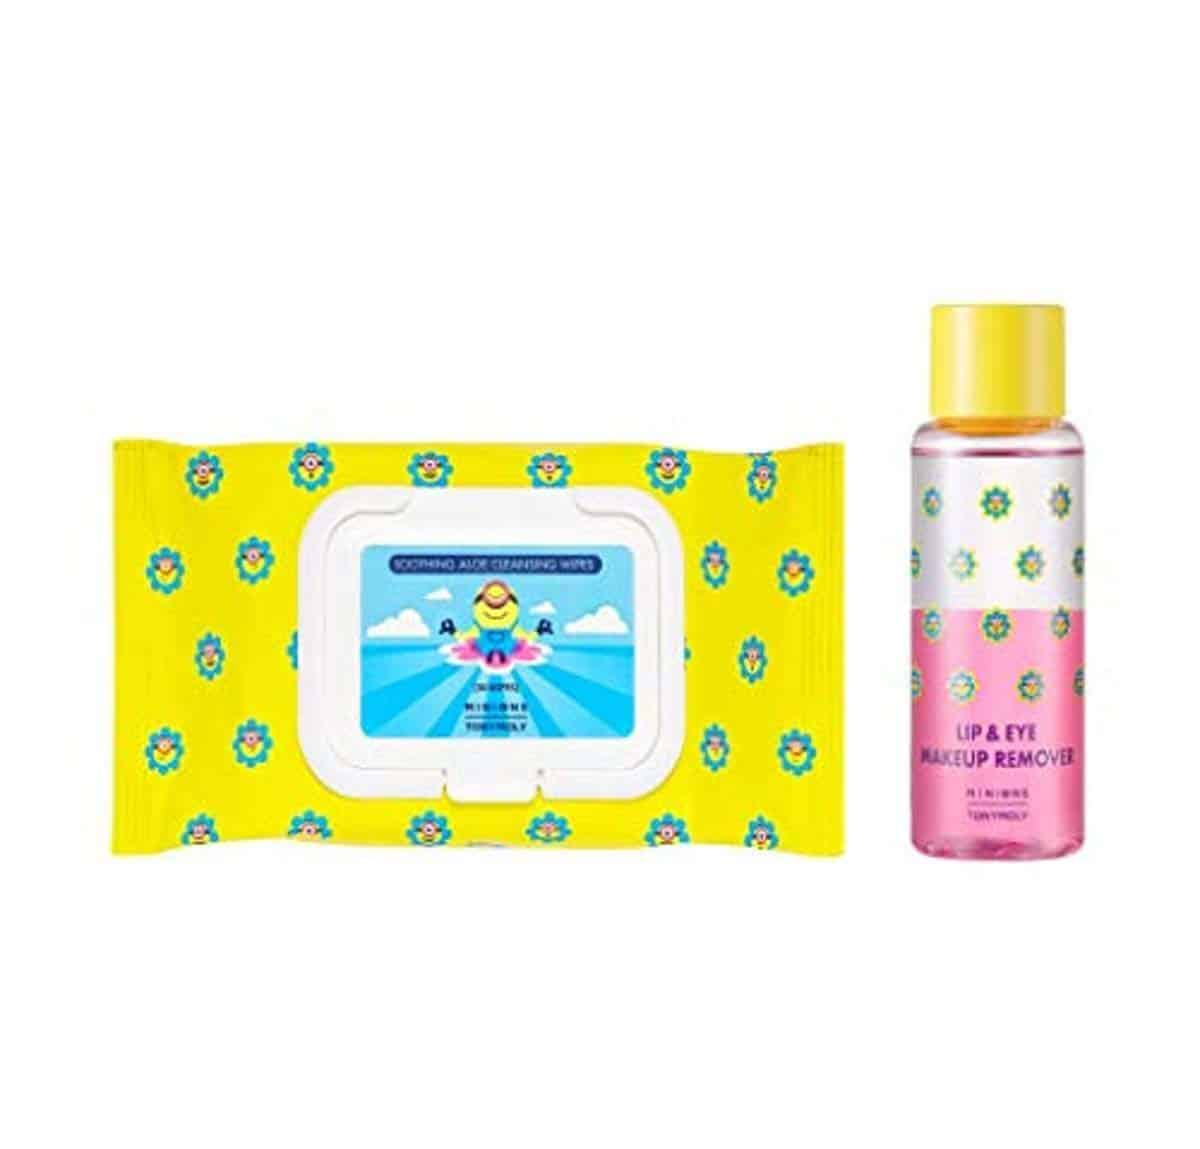 TONYMOLY X MINIONS Makeup Remover 65ml + Cleansing Wipe Set - tony moly make up